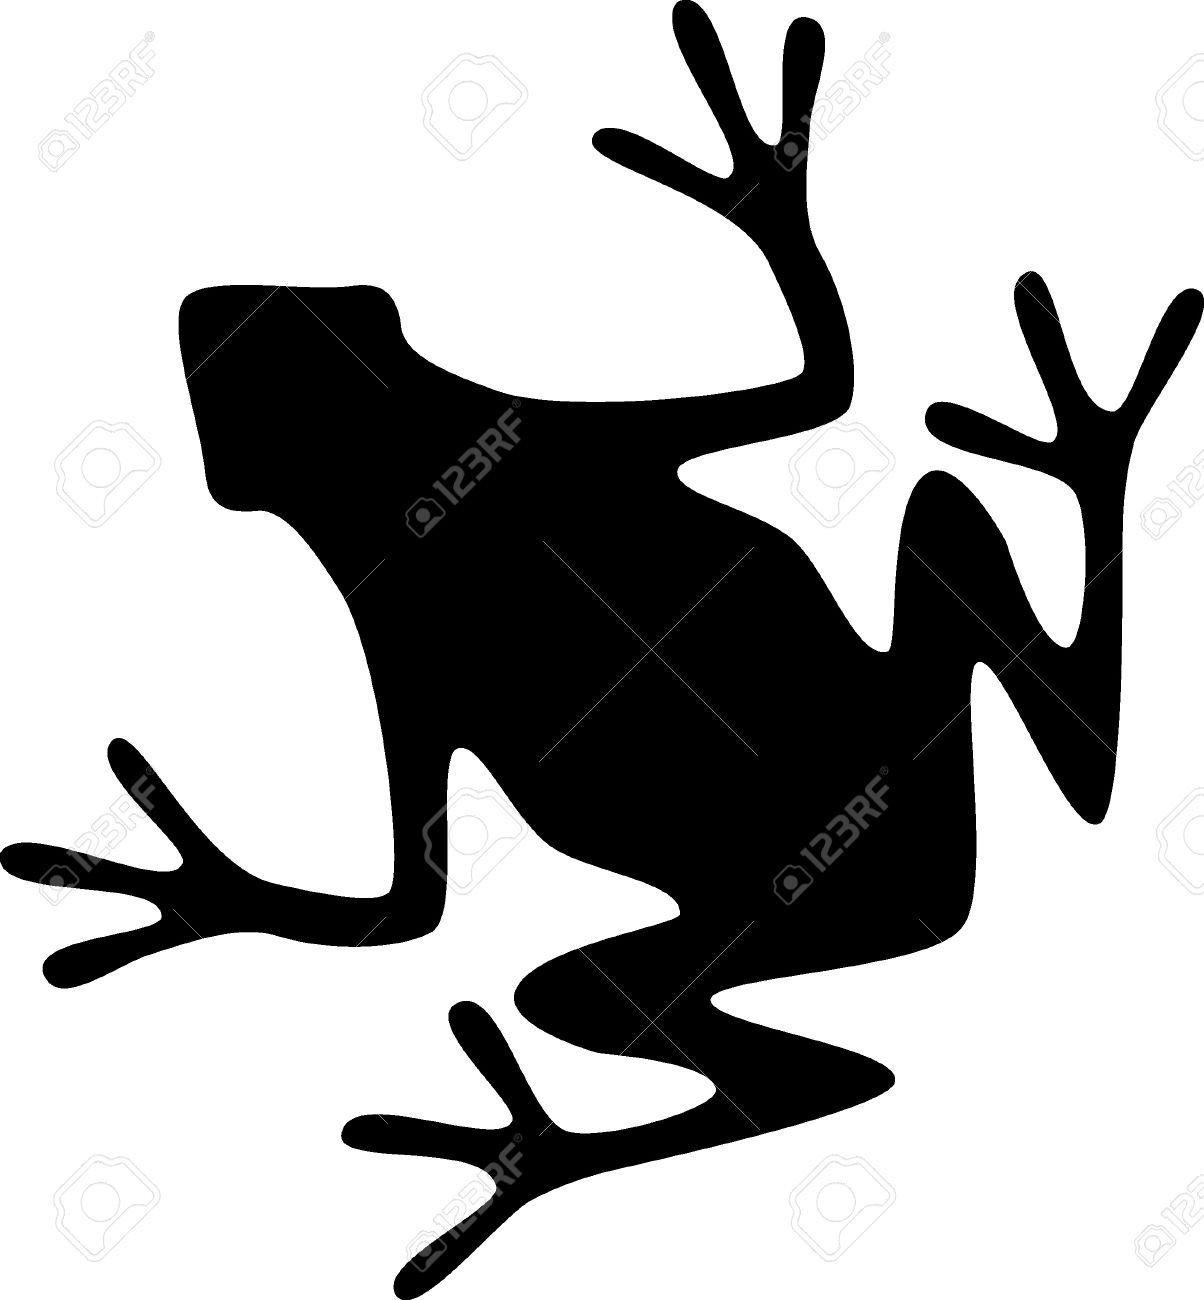 1204x1300 A Silhouette Of A Black Frog On White Background Royalty Free